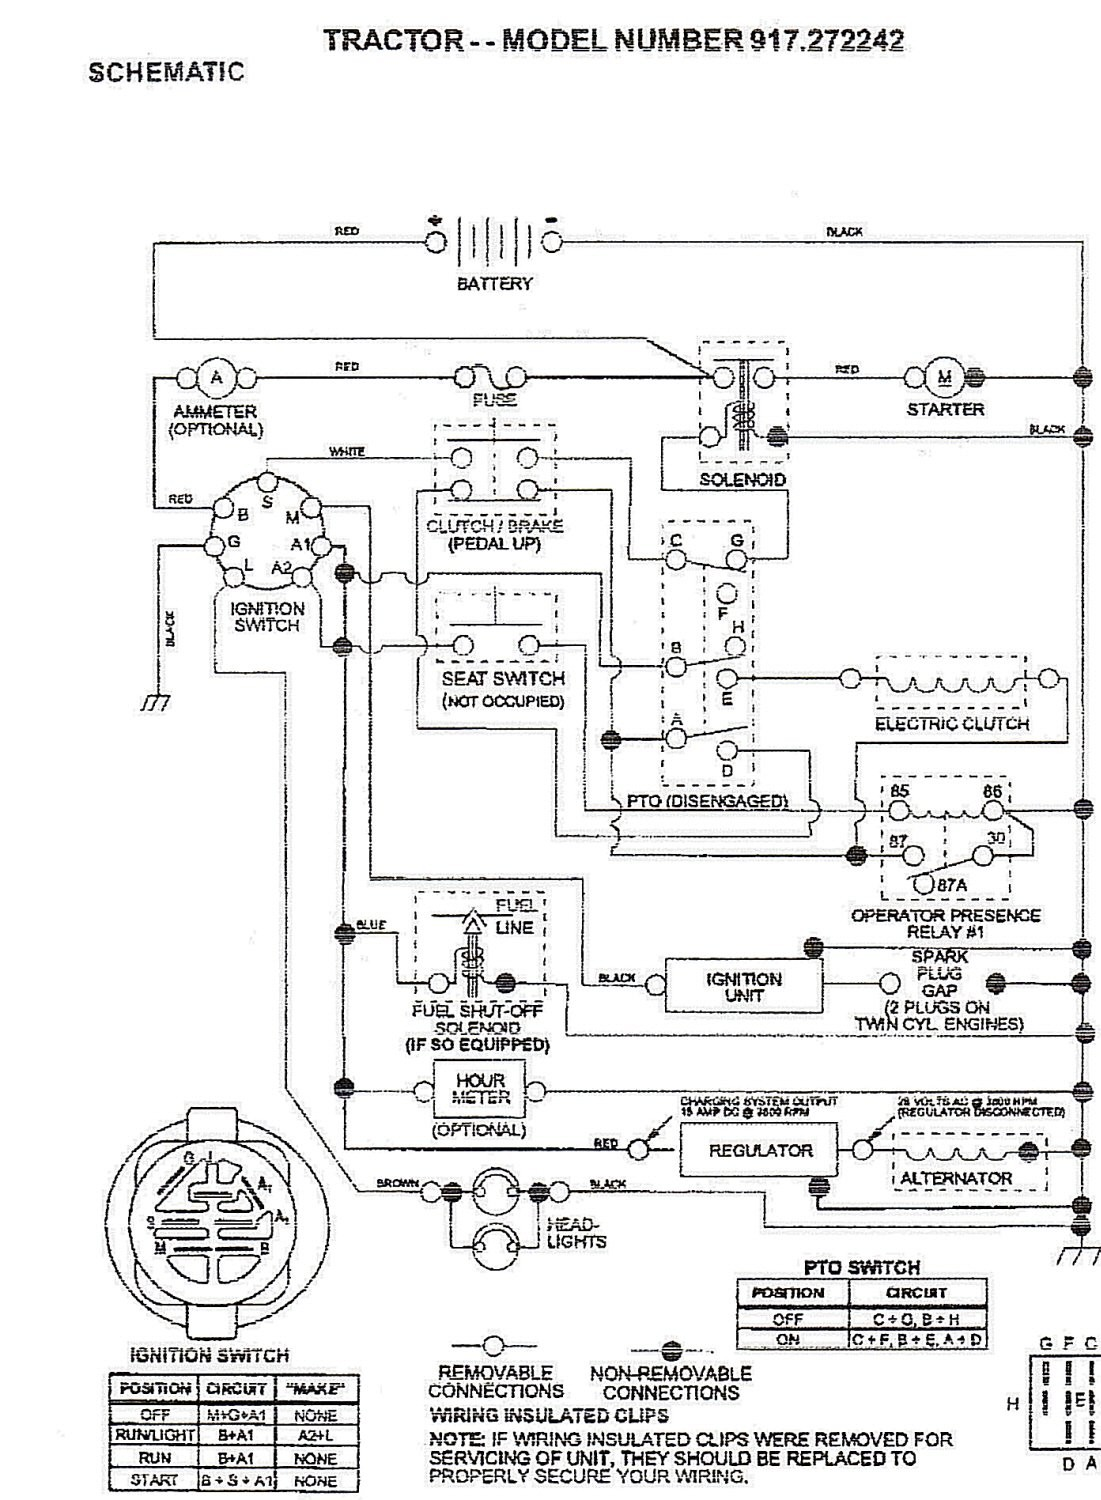 17.5 Hp Craftsman Wiring Diagram I Just Bought A Briggs and Stratton Power Built Intek 17 5 Hp Motor to Replace My Briggs Of 17.5 Hp Craftsman Wiring Diagram